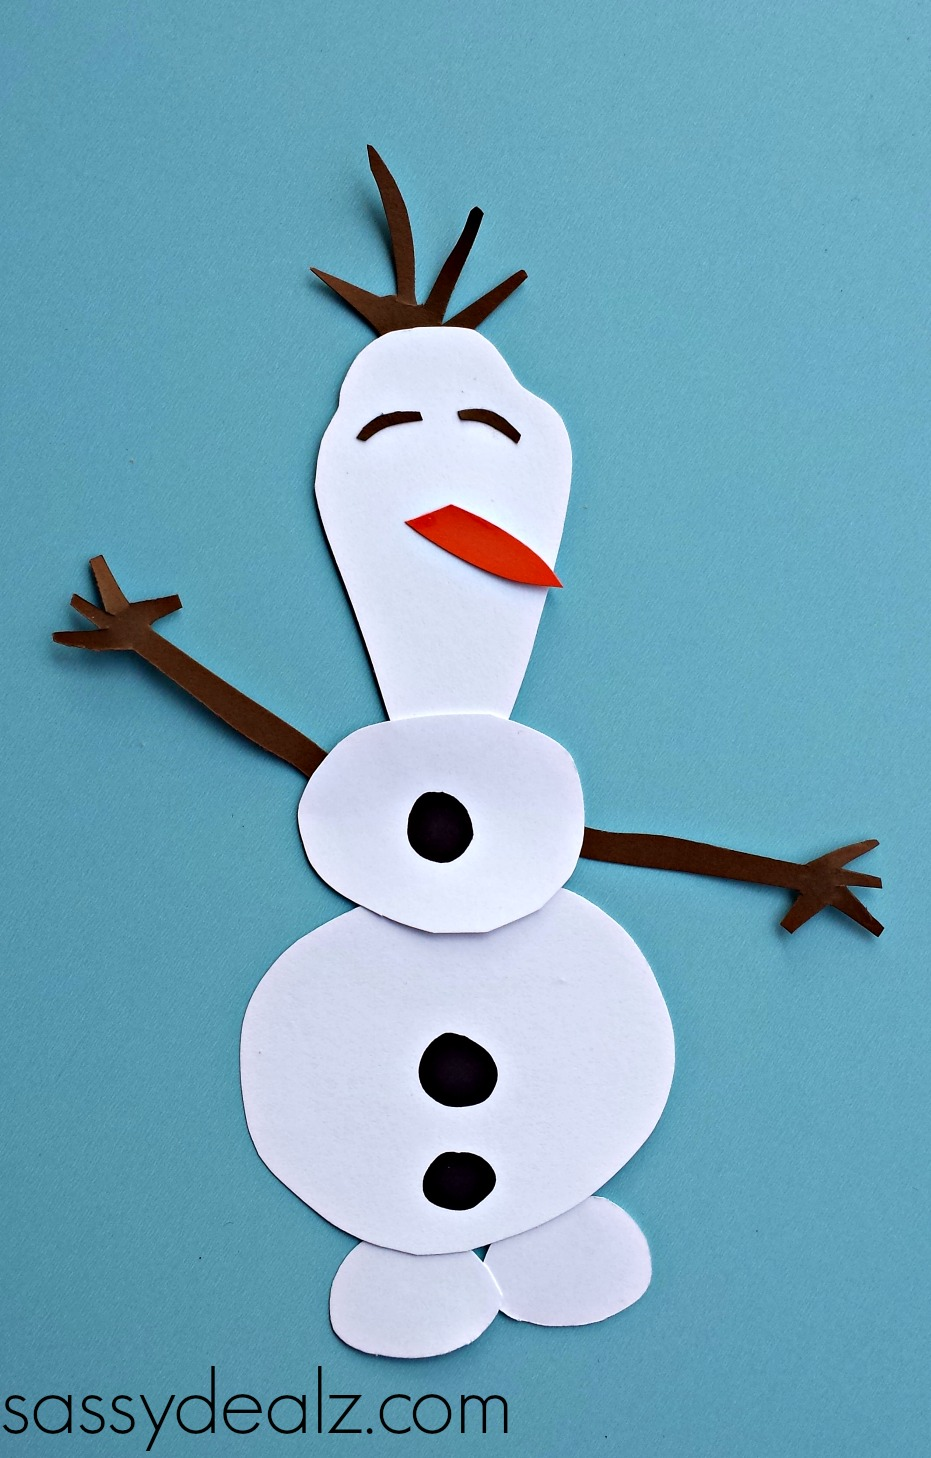 frozen olaf toilet paper roll craft for kids - crafty morning